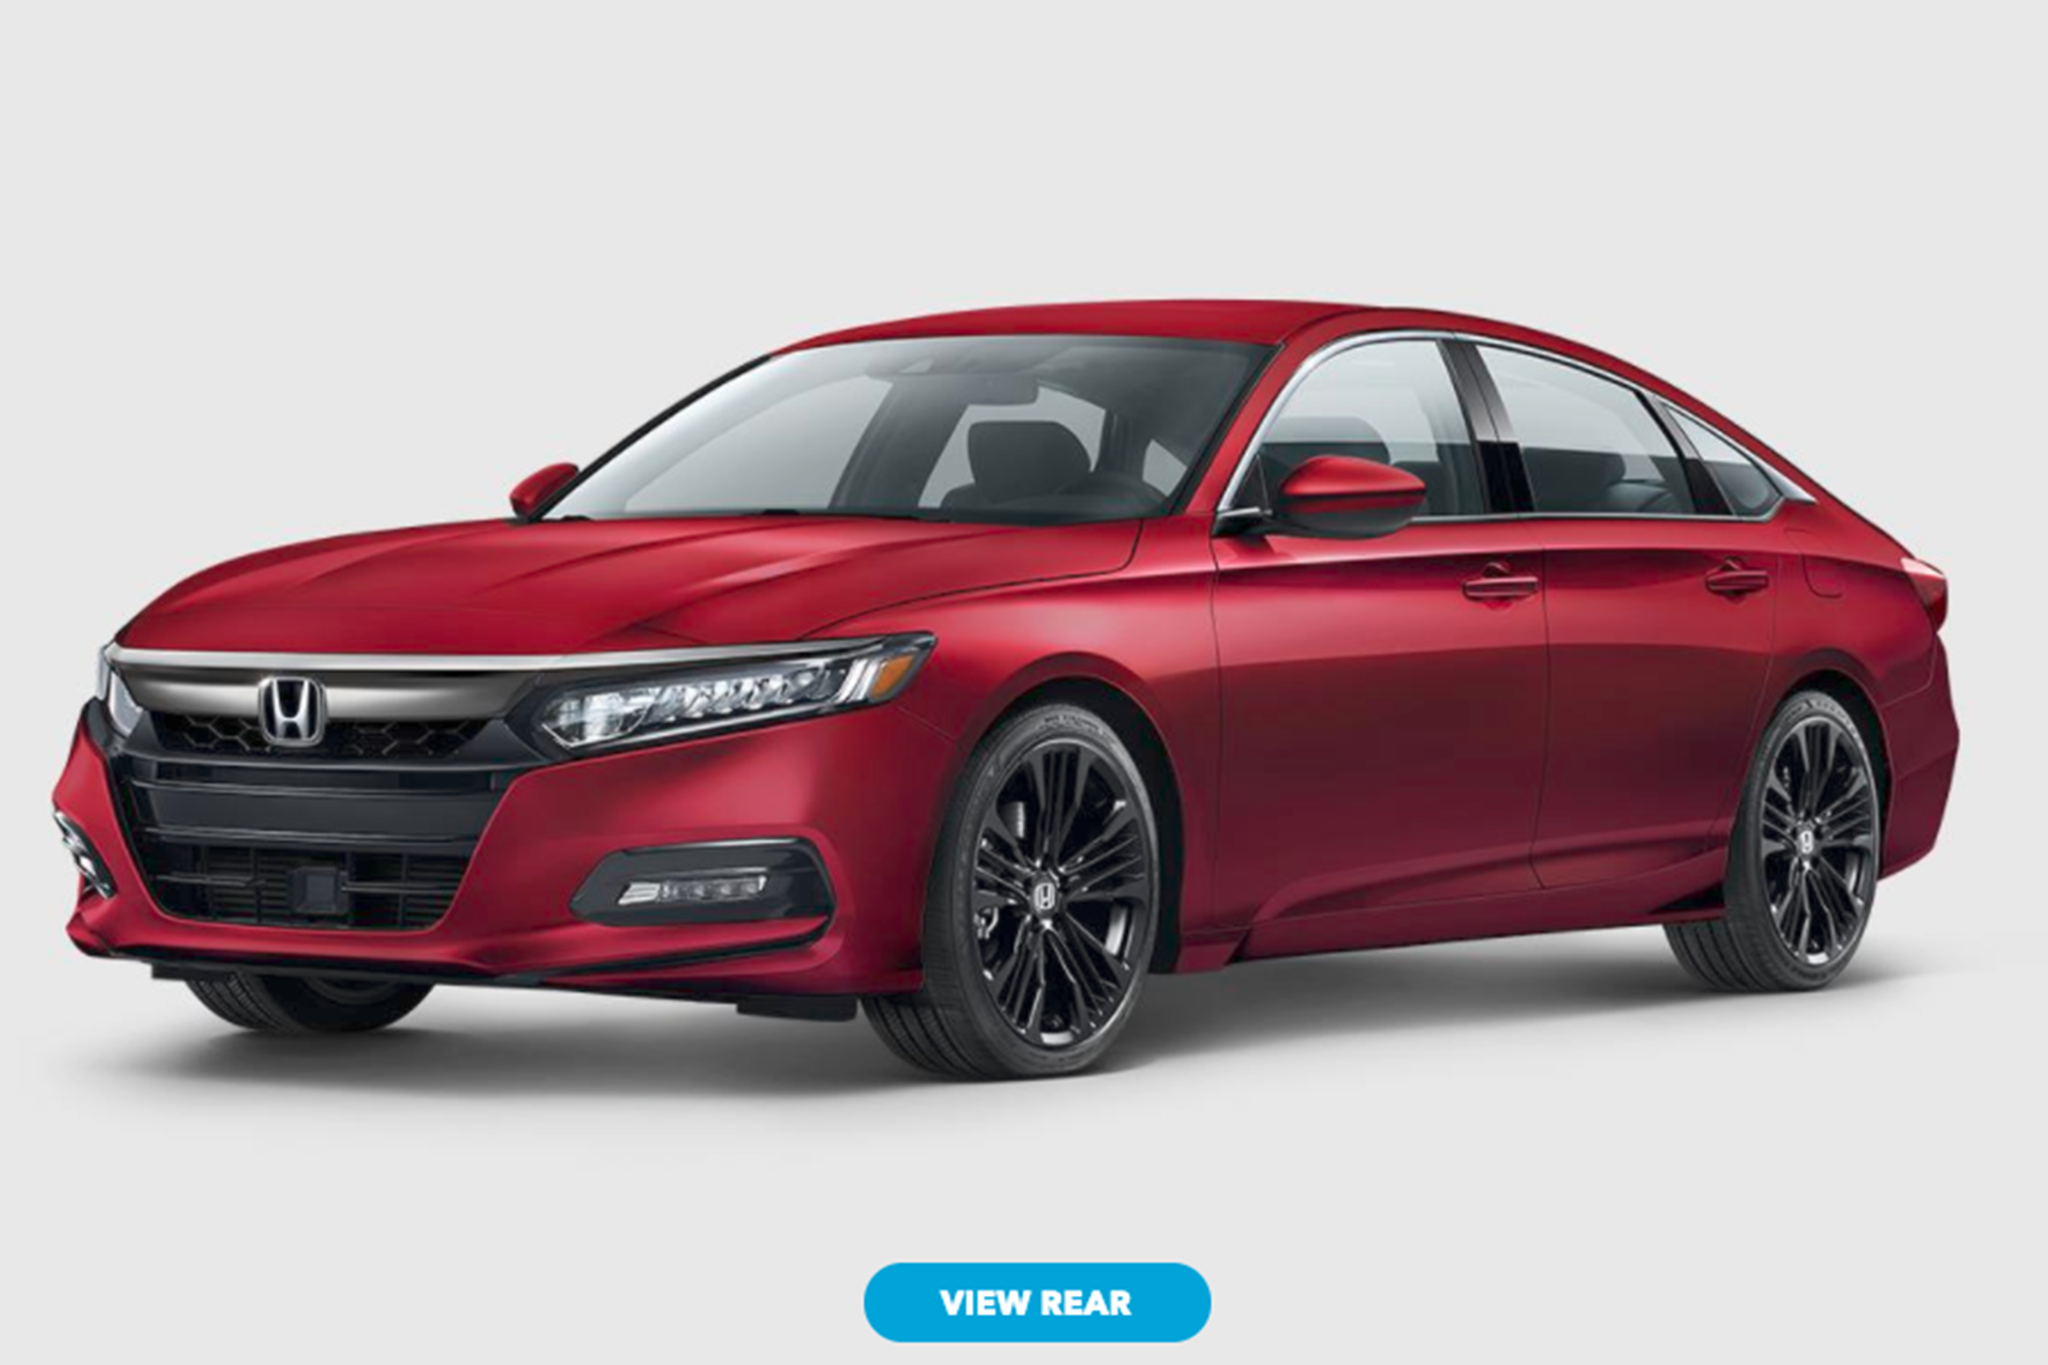 Honda Accord 2018 Spec >> 2018 Honda Accord Configurator is Live | Automobile Magazine